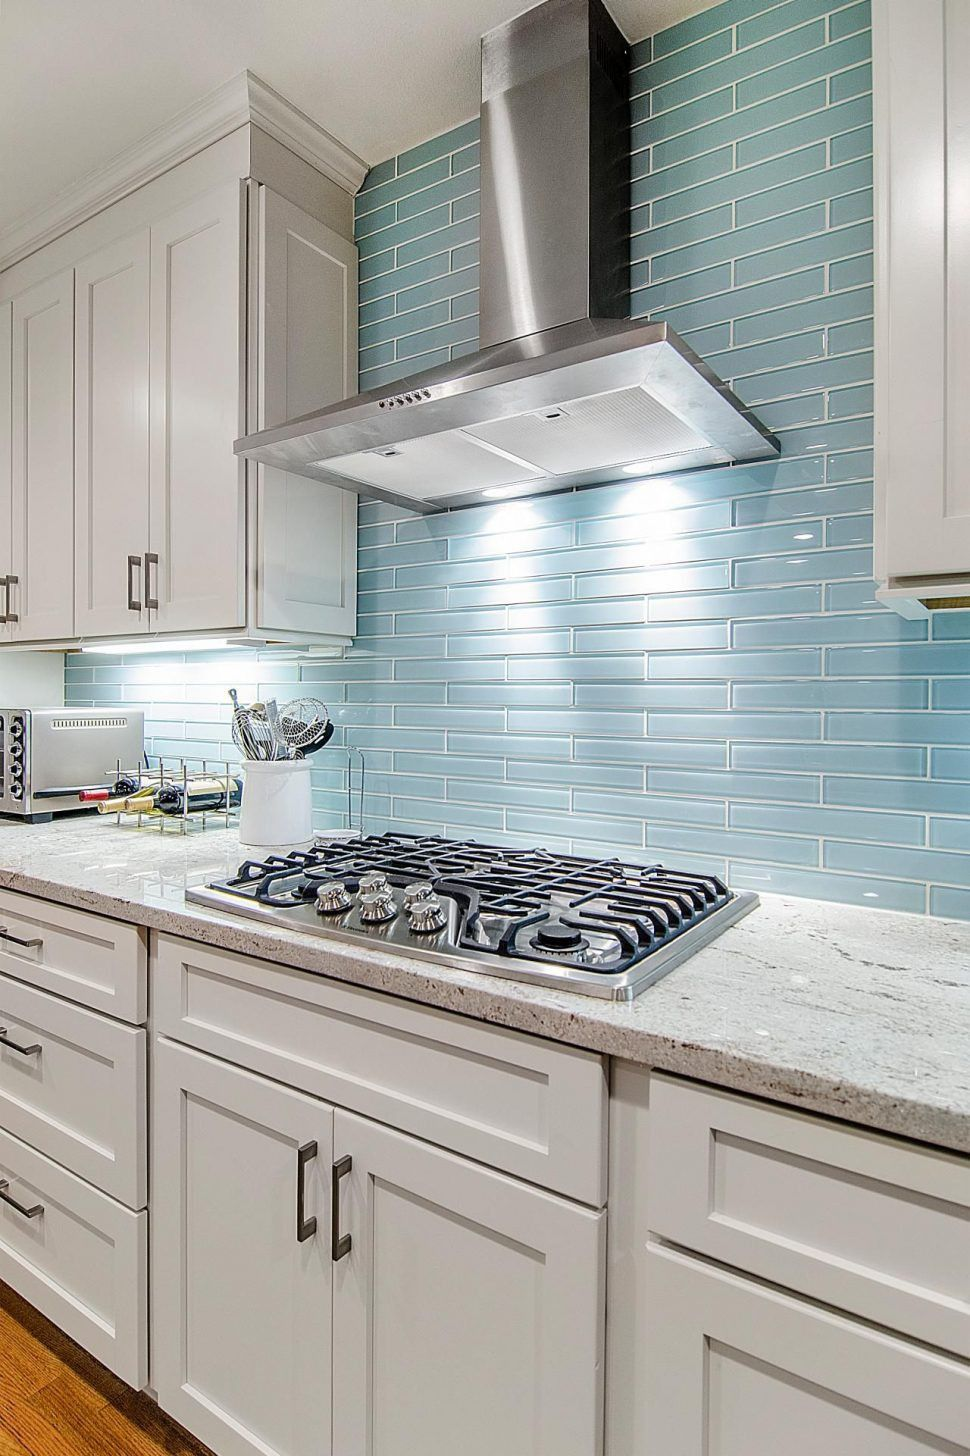 Pin By Erlangfahresi On Granite Countertops Colors In 2019 Blue